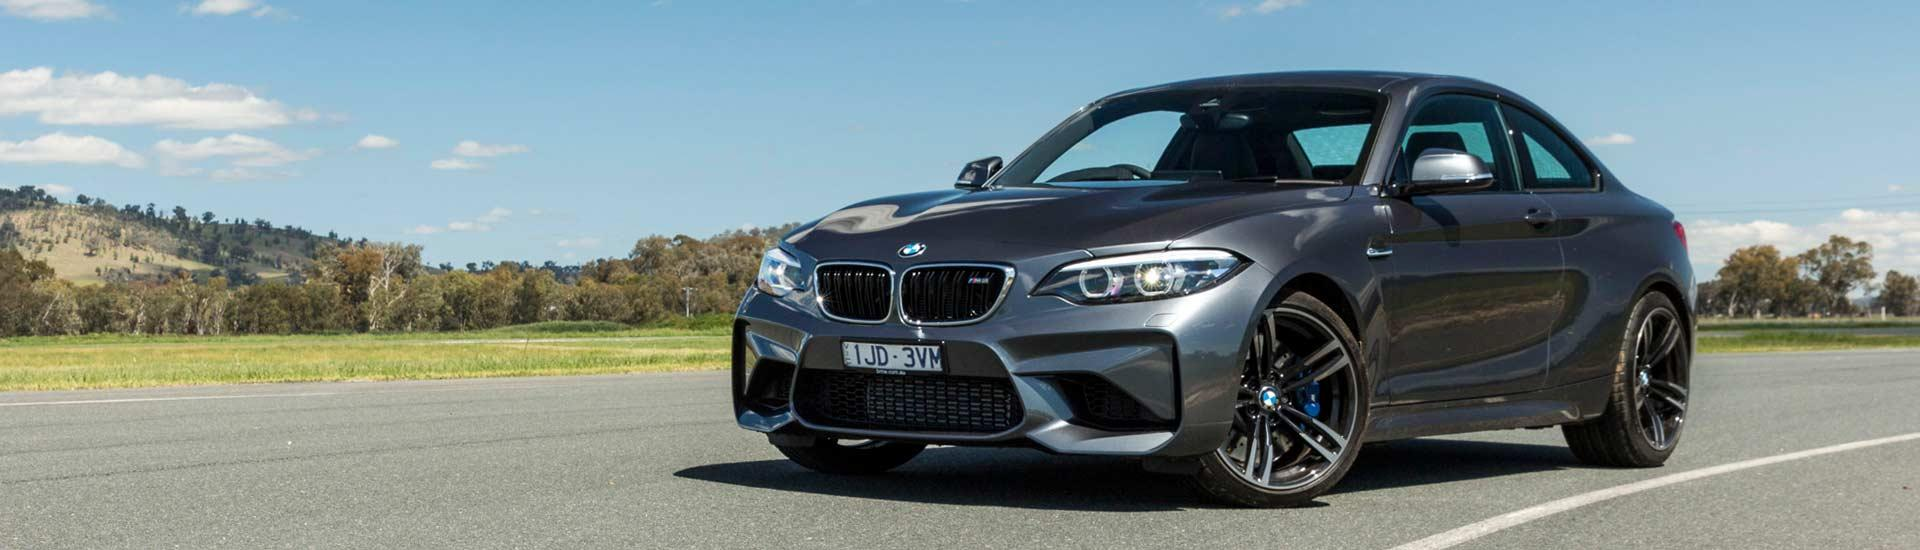 The BMW M2 wins Best Performance Car Under 100K in the Carsales ...